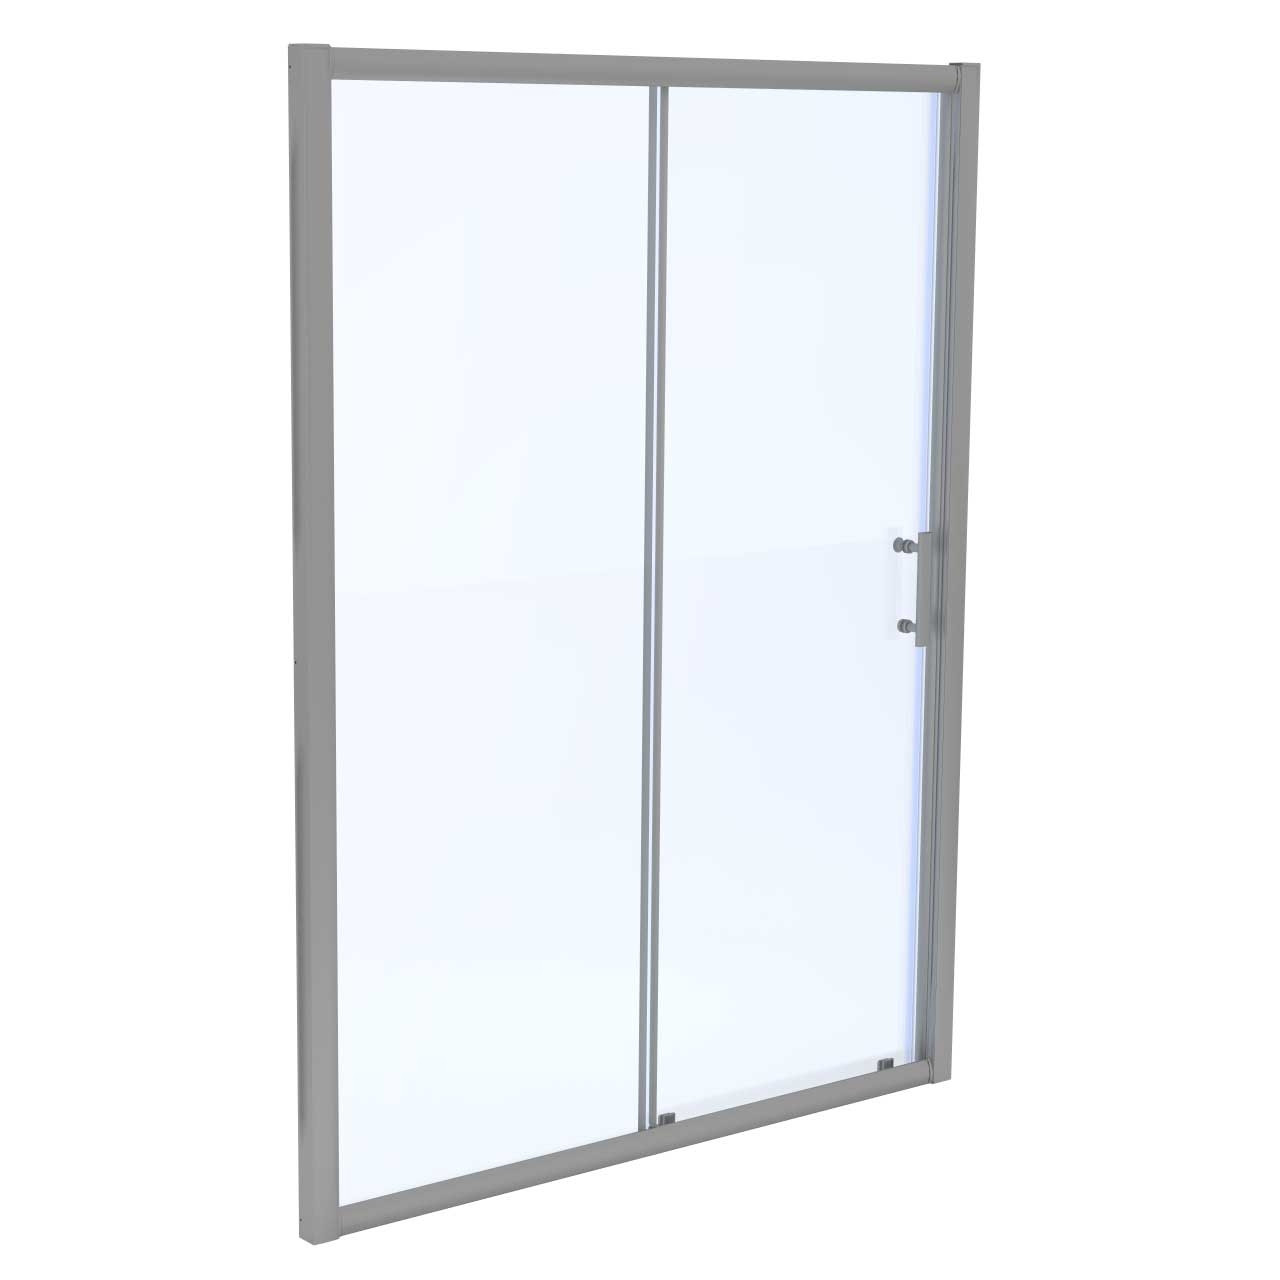 Series 6 1400 x 900 Sliding Door Enclosure